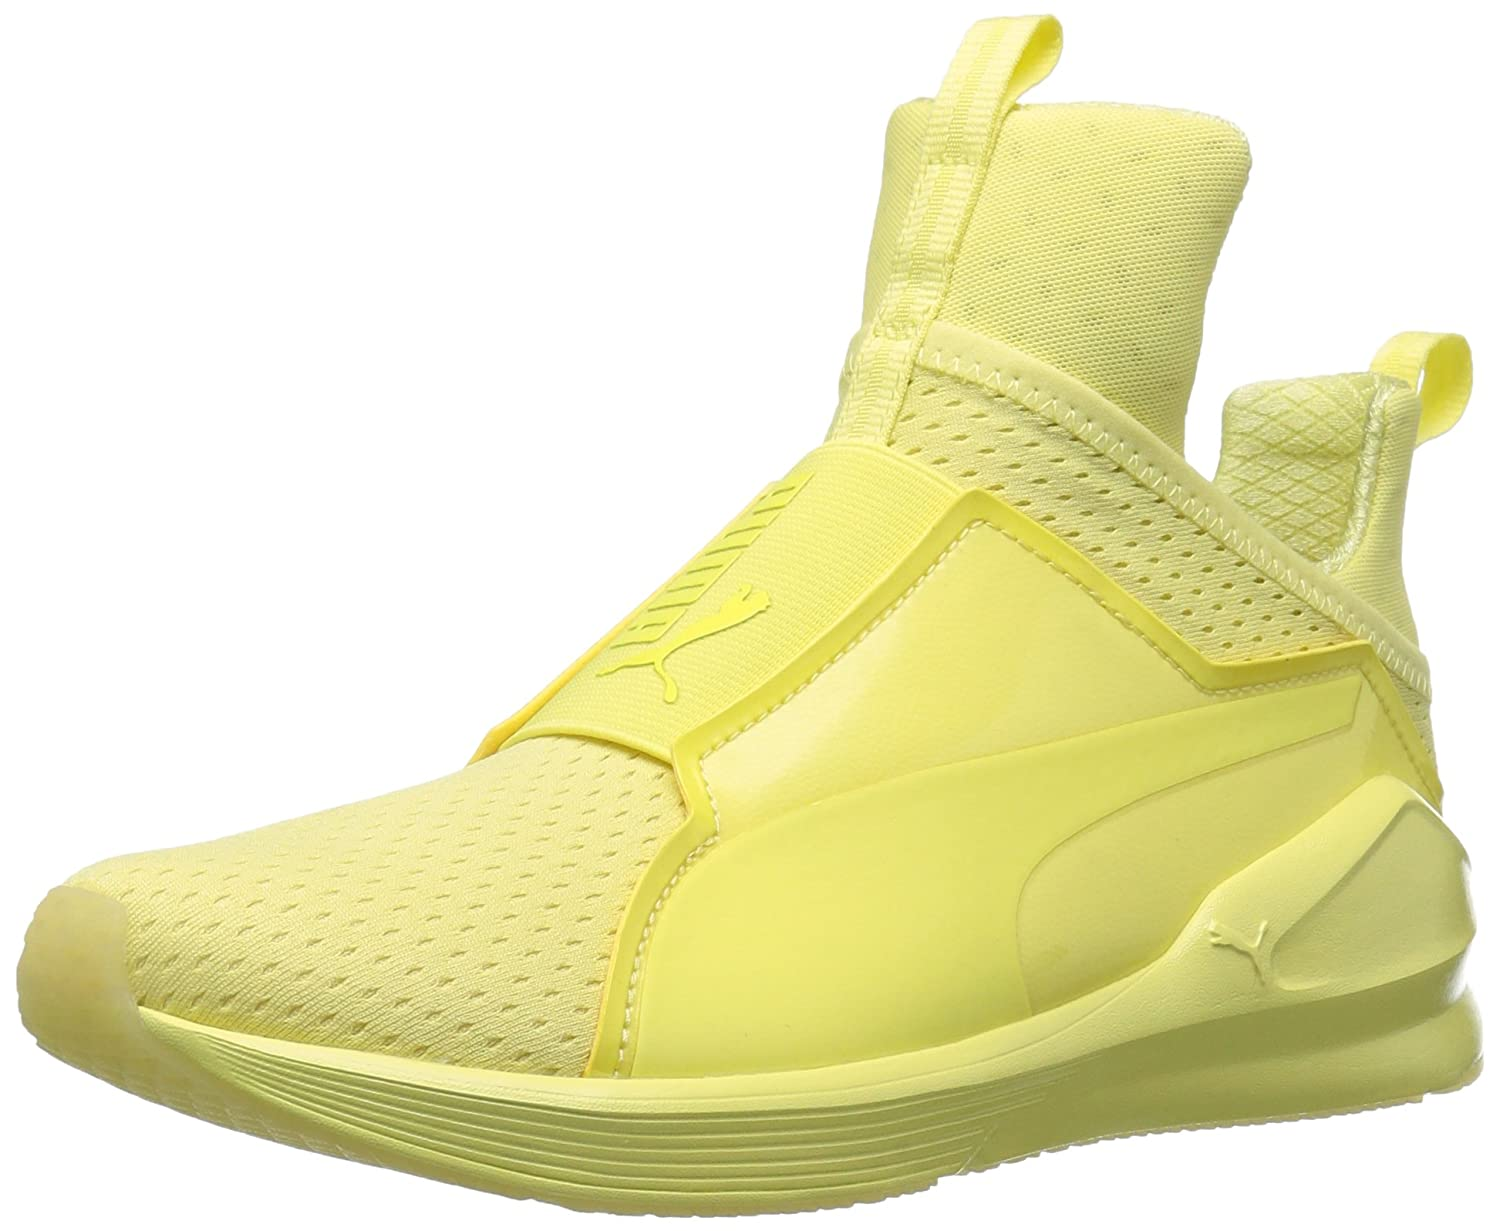 PUMA Women's Fierce Bright Mesh Cross-Trainer Shoe B01J5RVHF0 7 M US|Elfin Yellow